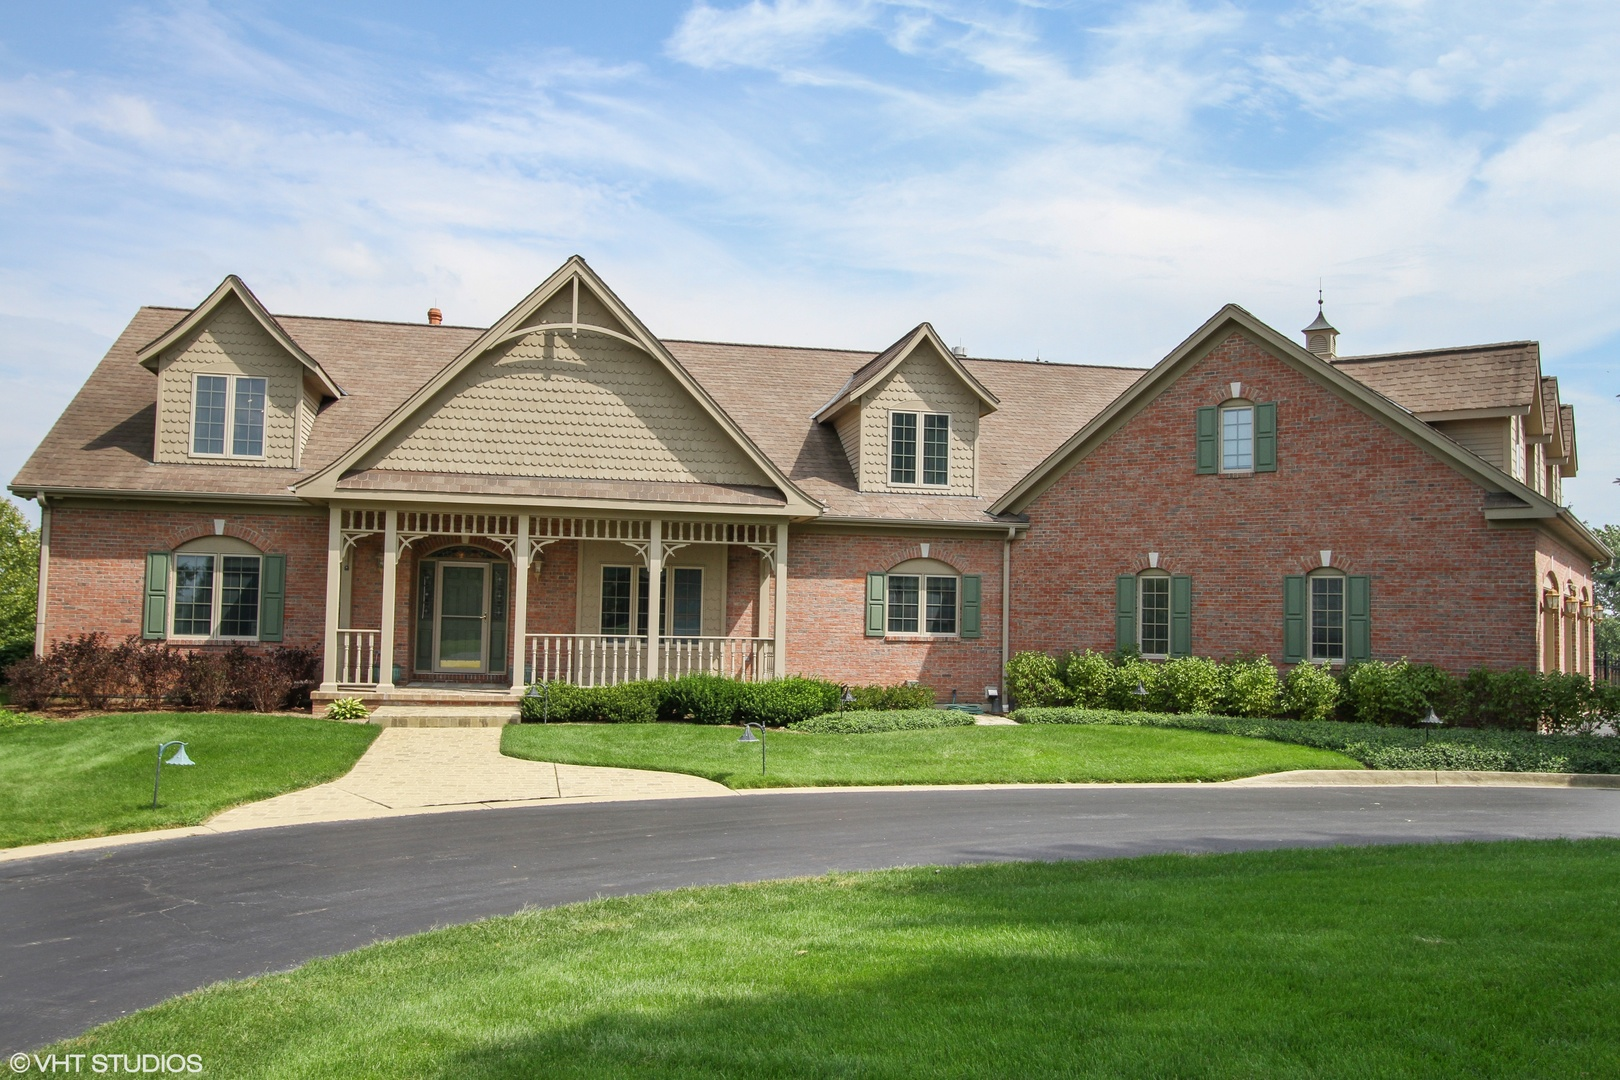 200 S Green Street, Mchenry, IL 60050